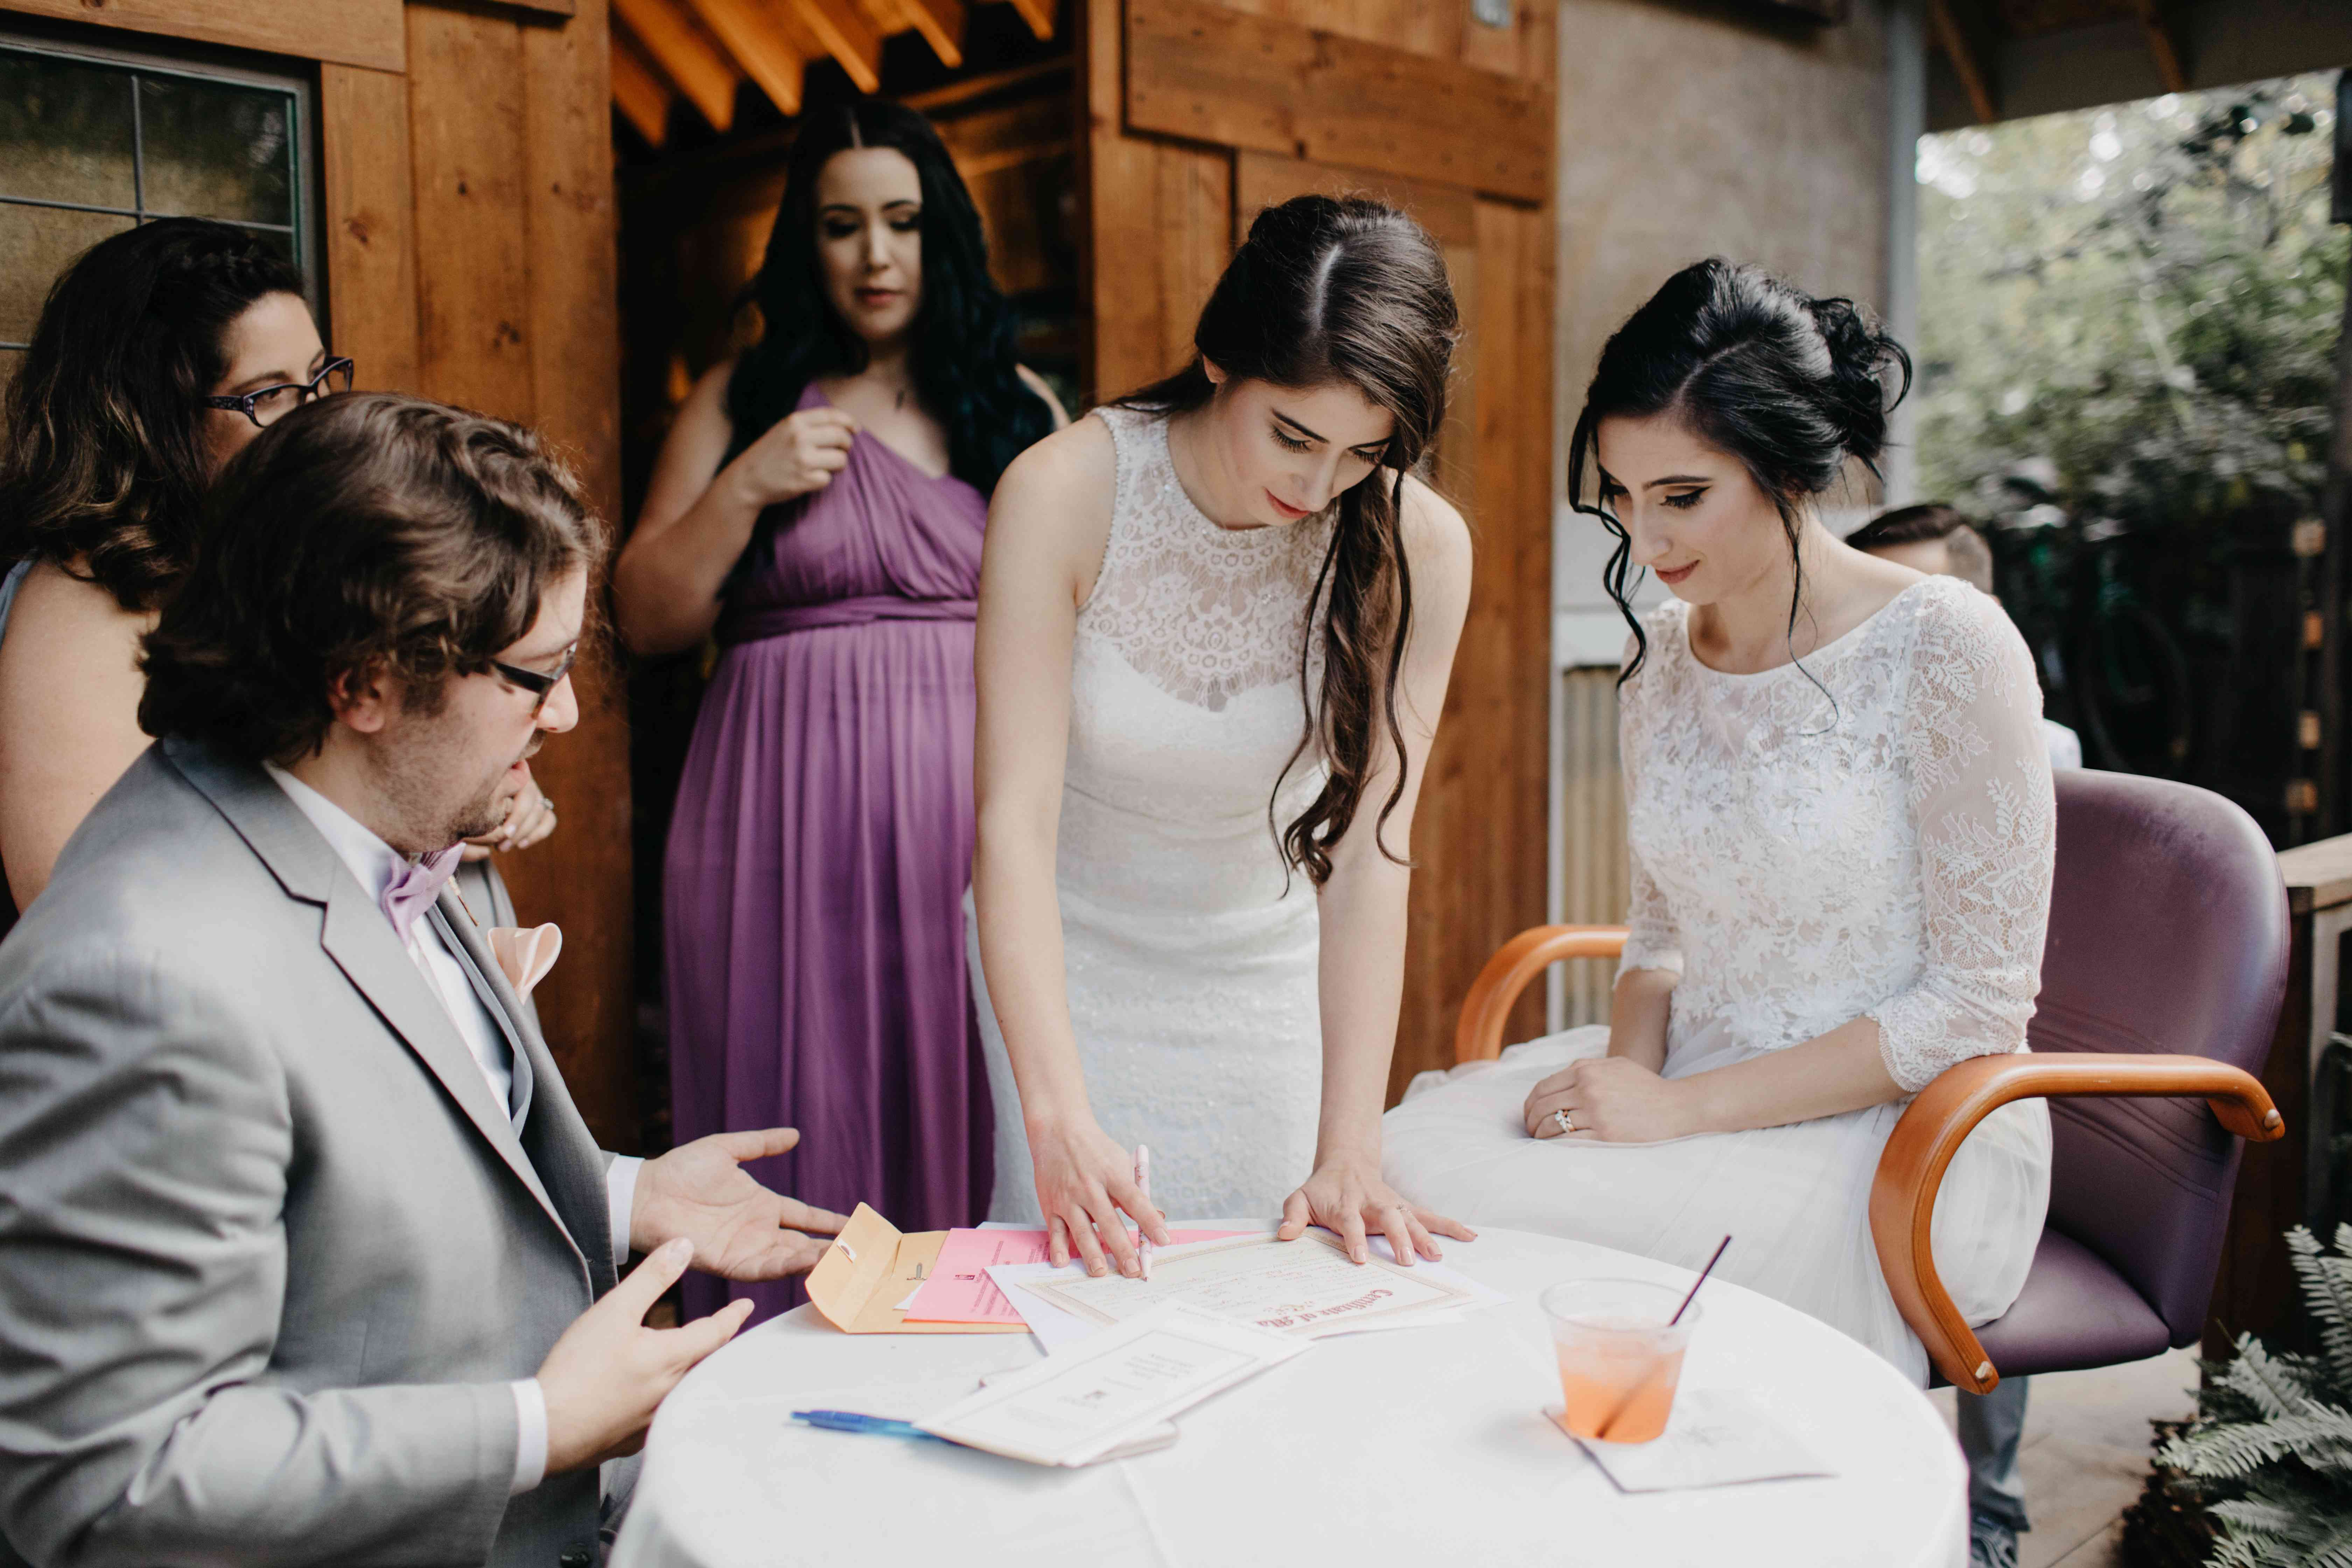 Signing of the marriage license